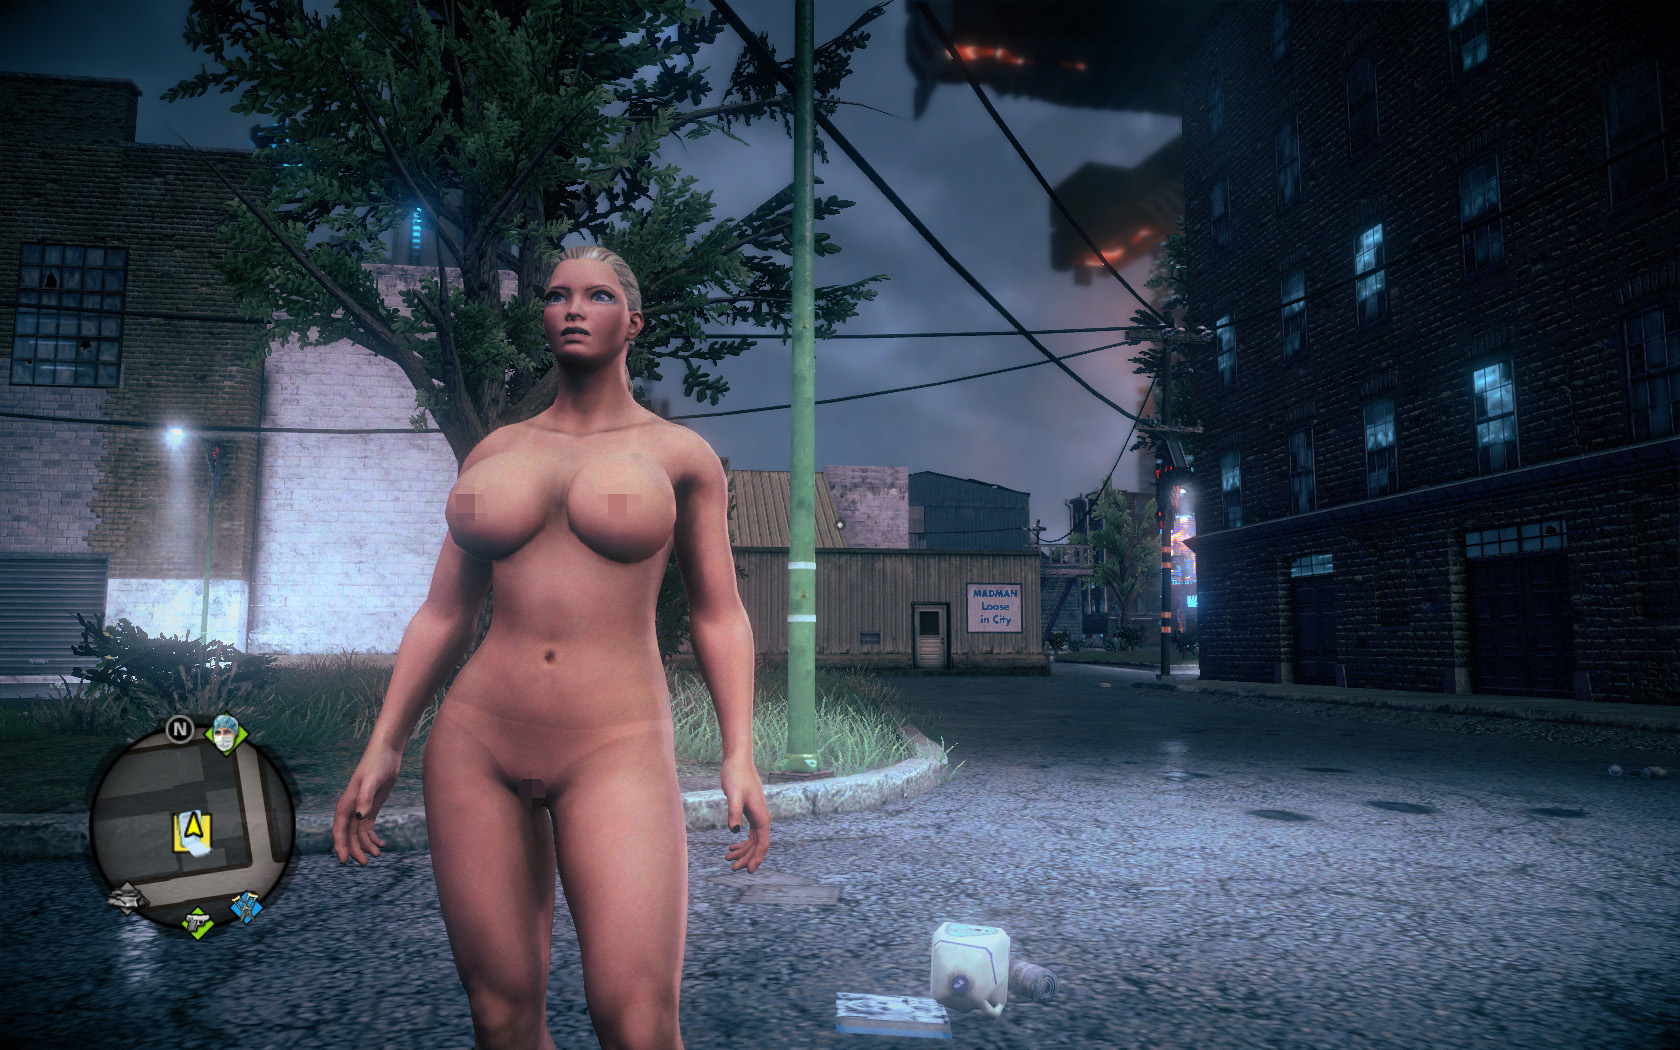 Hot naked saints row 4 sexy toons